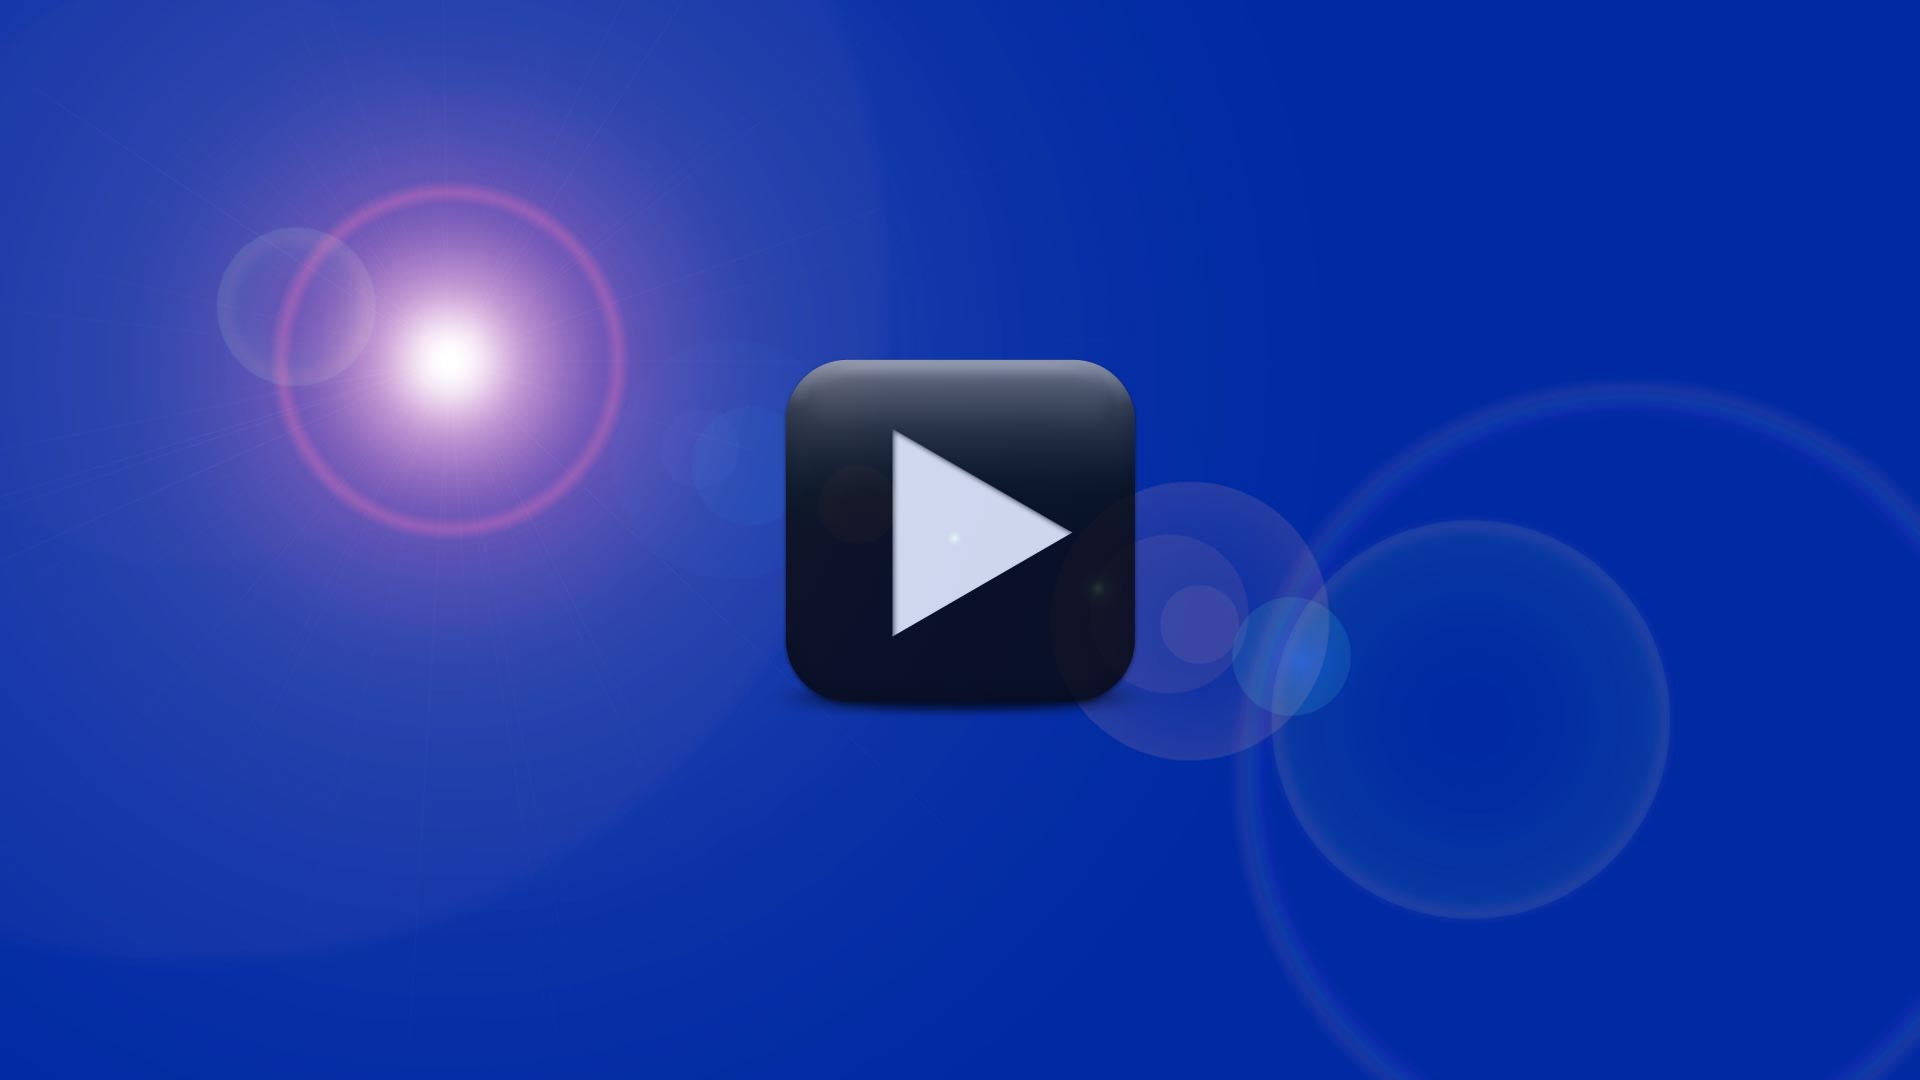 Lens Flare Animation Royalty Free Download